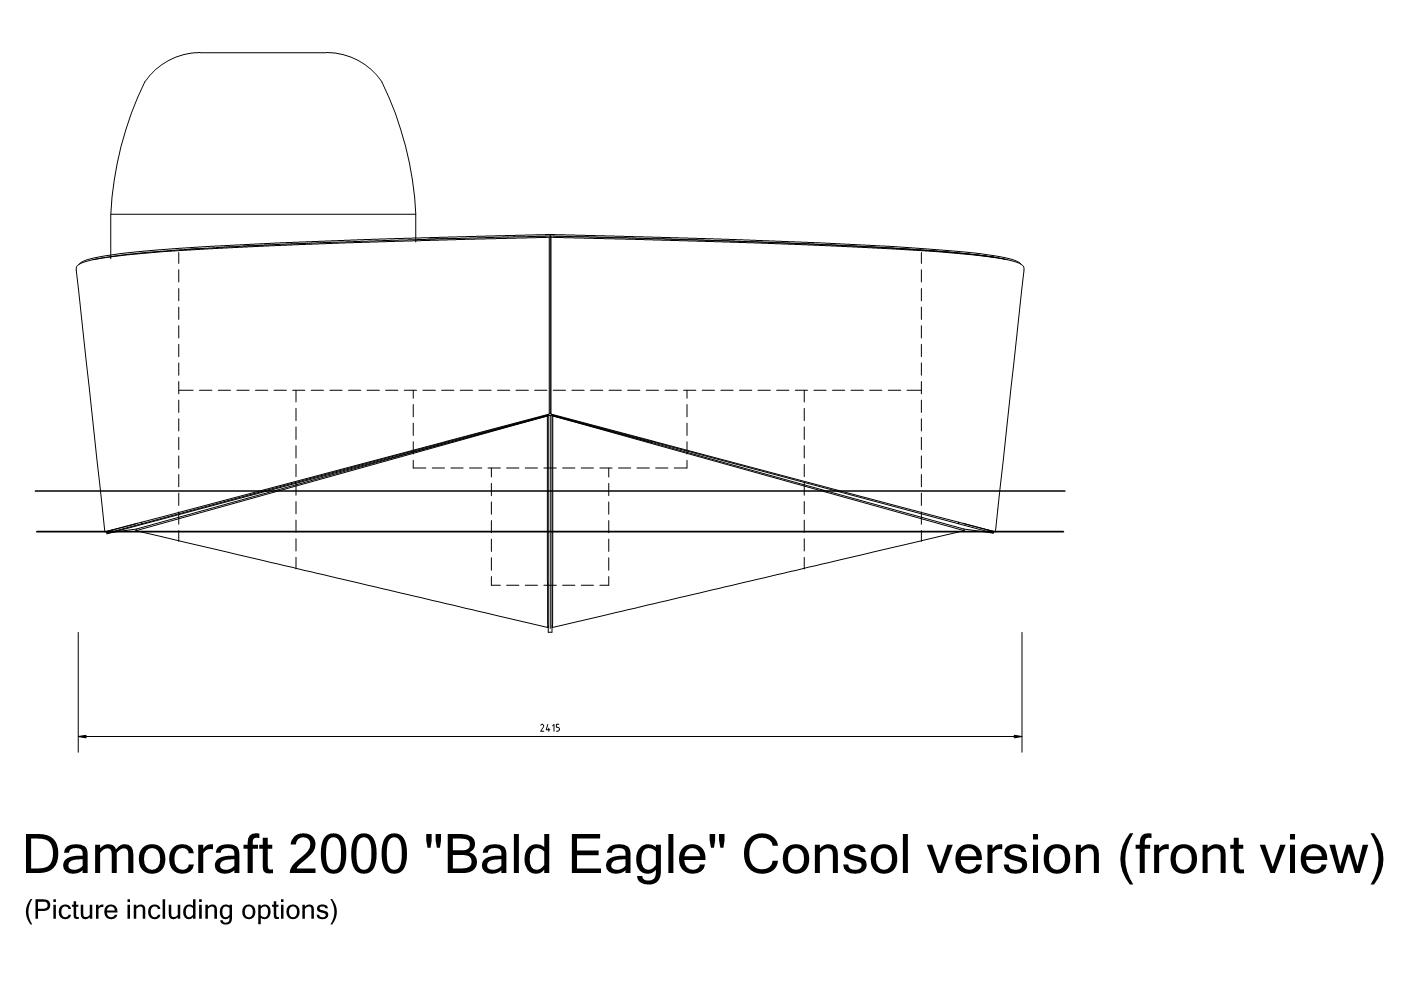 Damocraft 2000 Bald Eagle consol version frontview